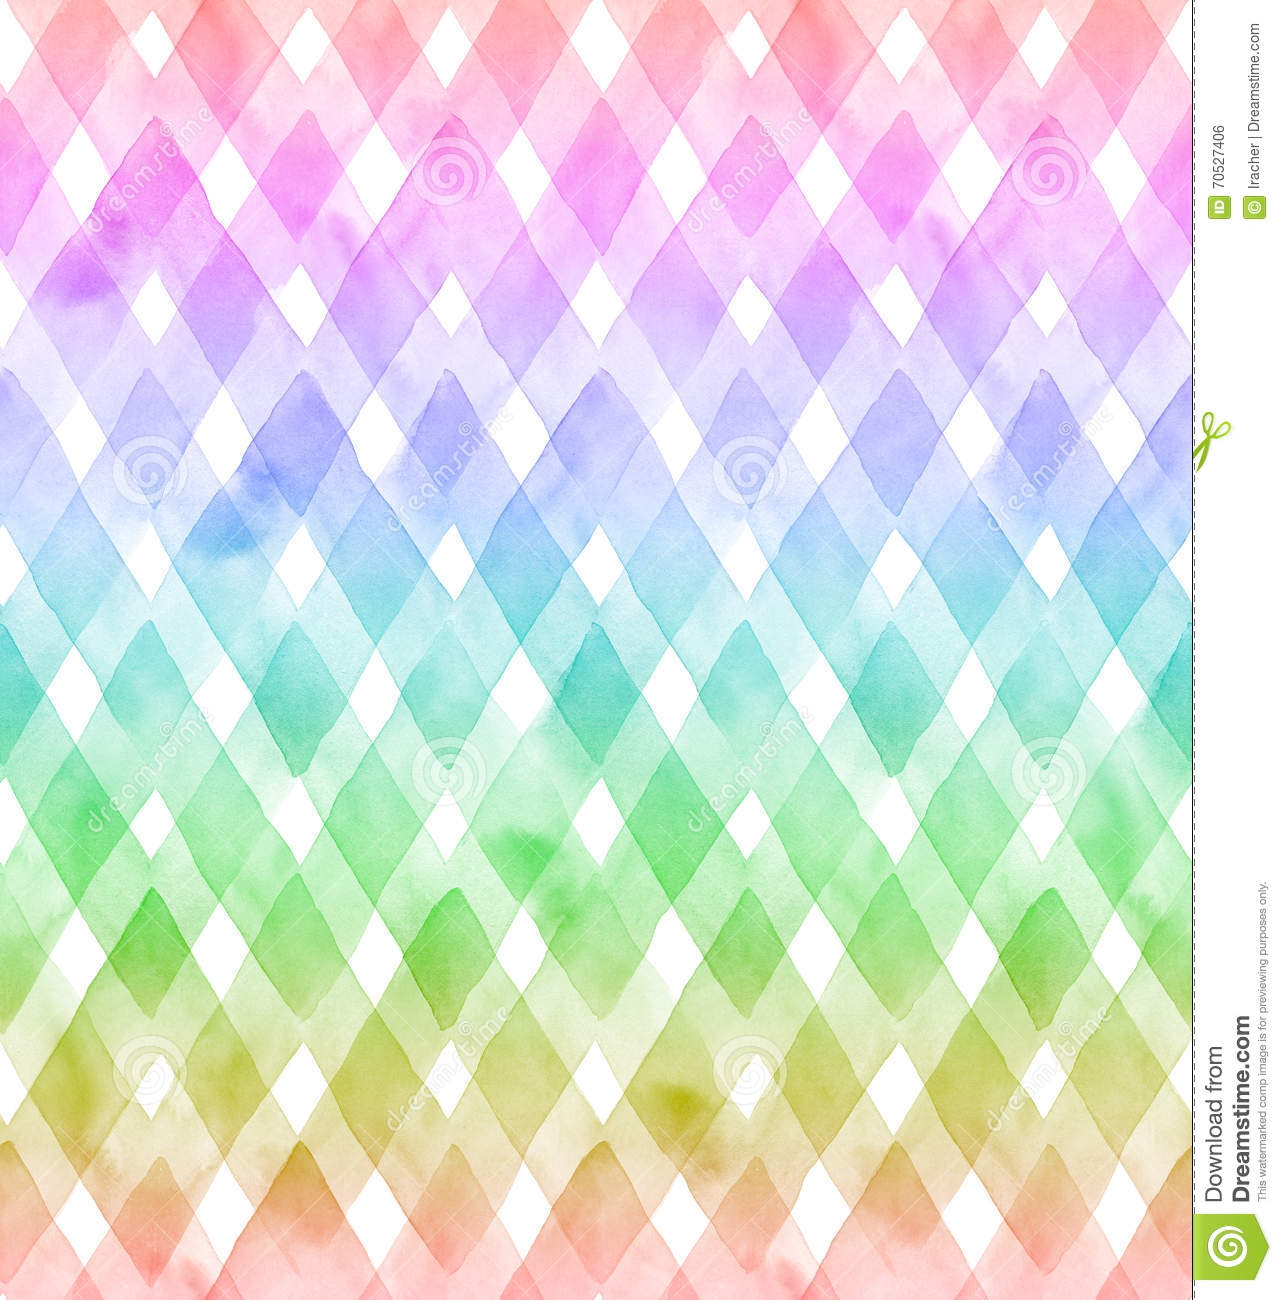 Watercolor Chevron With White Background Seamless Pattern